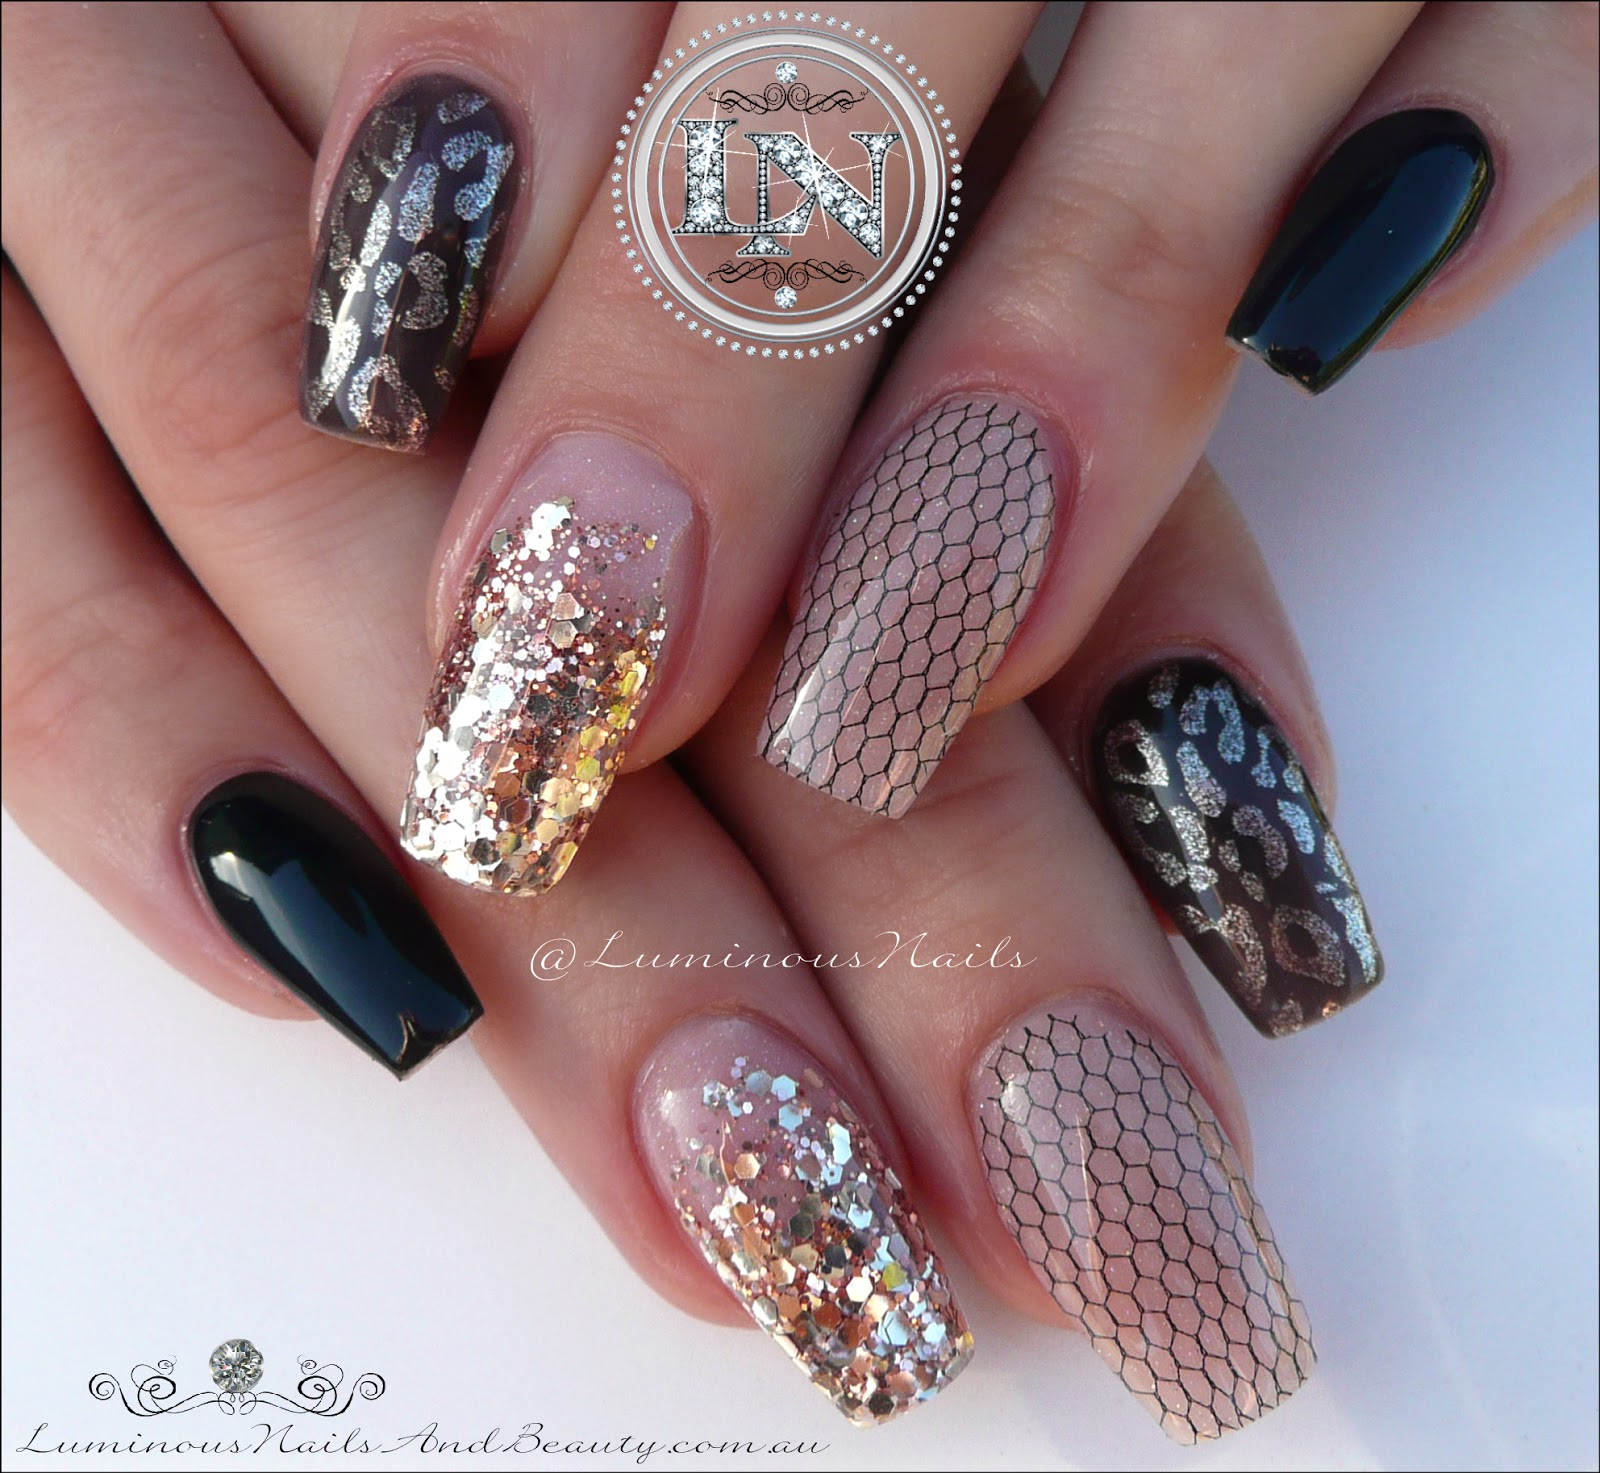 Luminous Nails: Black & Goldie Nude, Acrylic & Gel Nails.